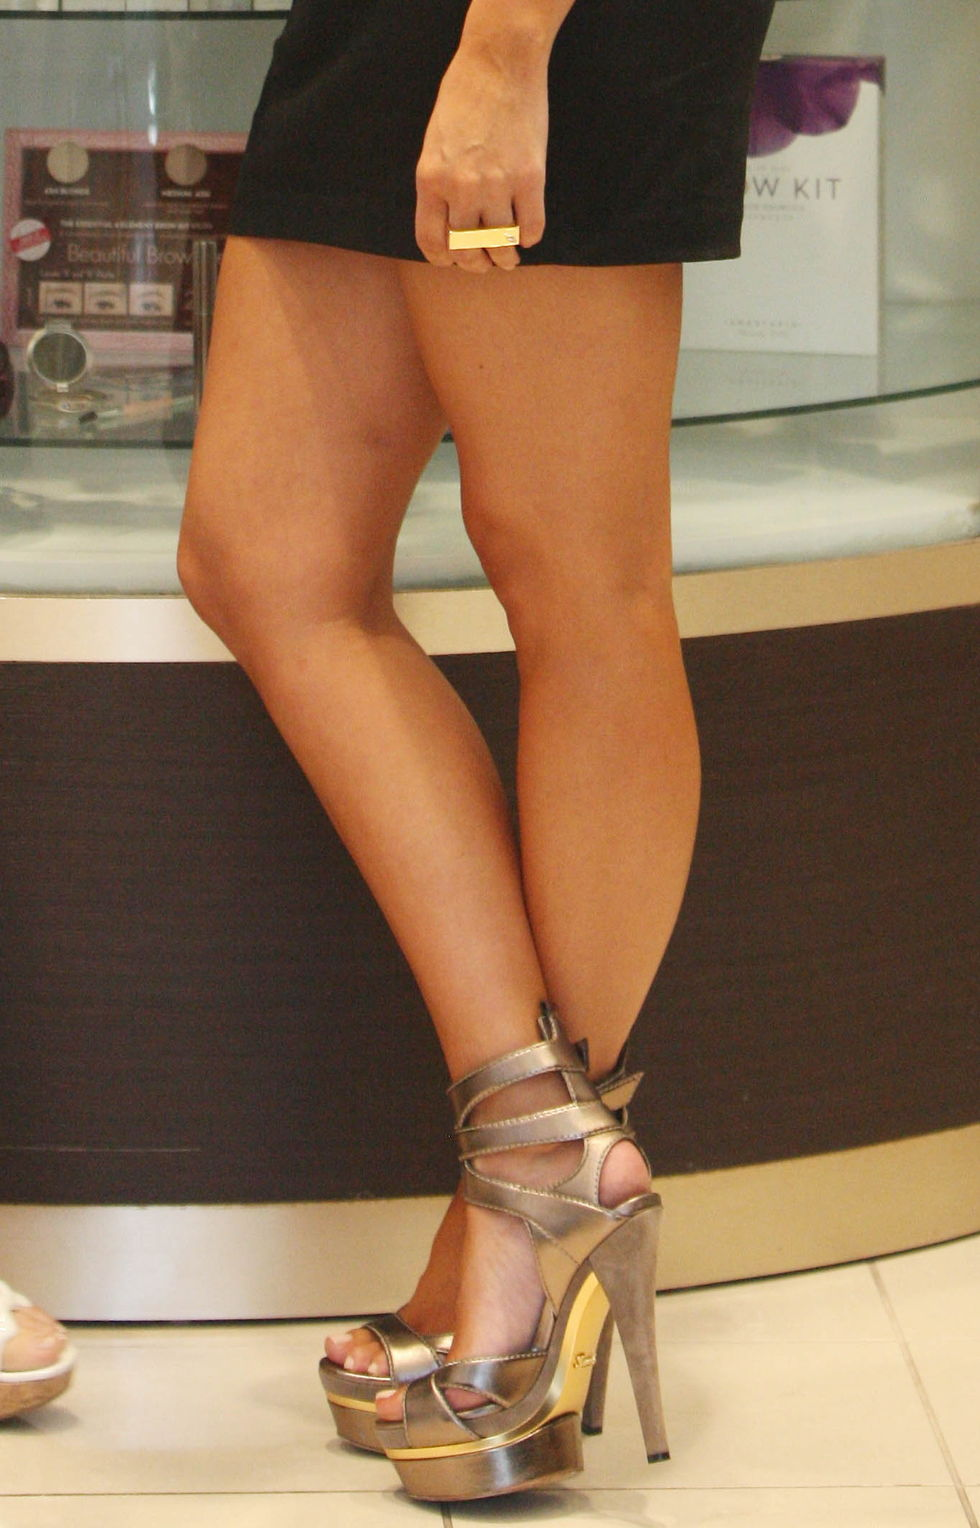 kim-kardashian-leggy-candids-at-anastasia-salon-in-beverly-hills-01